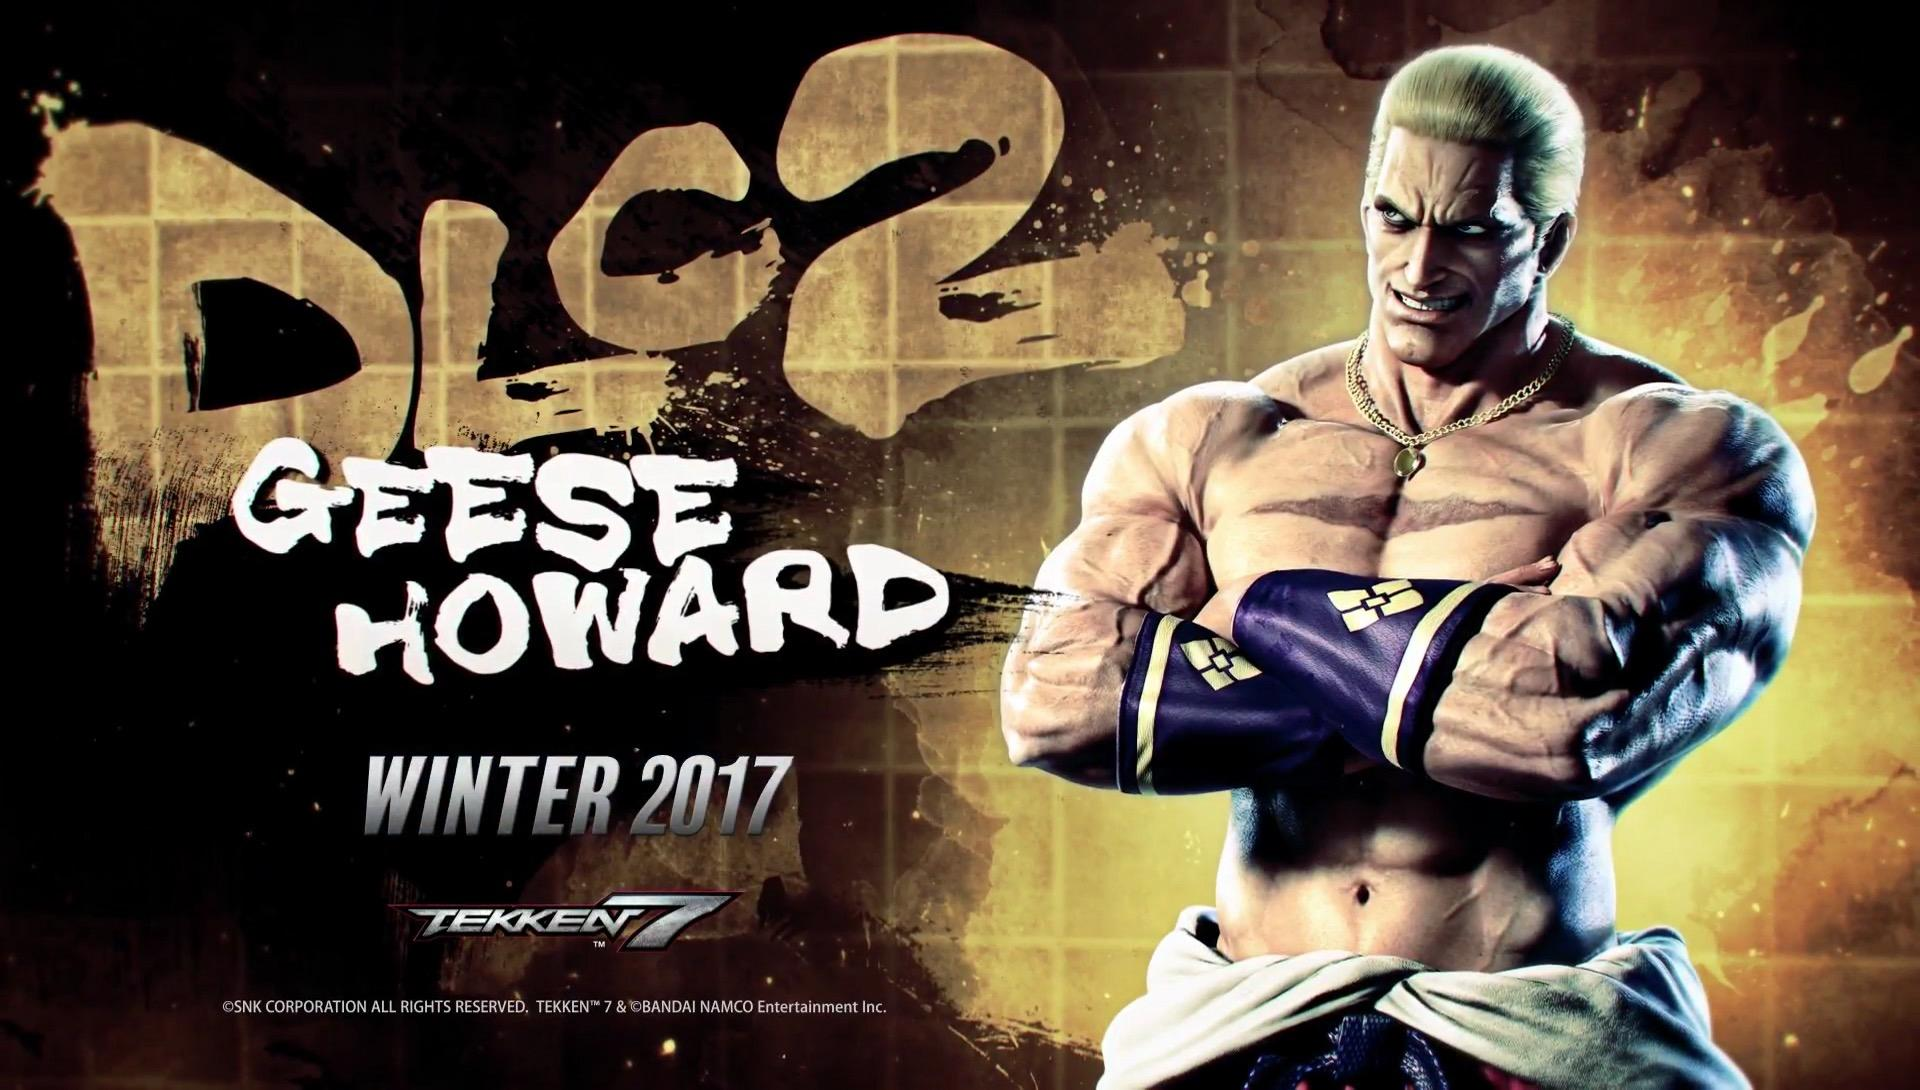 Cowards Be Gone - Geese Howard Joins the Cast of Tekken 7